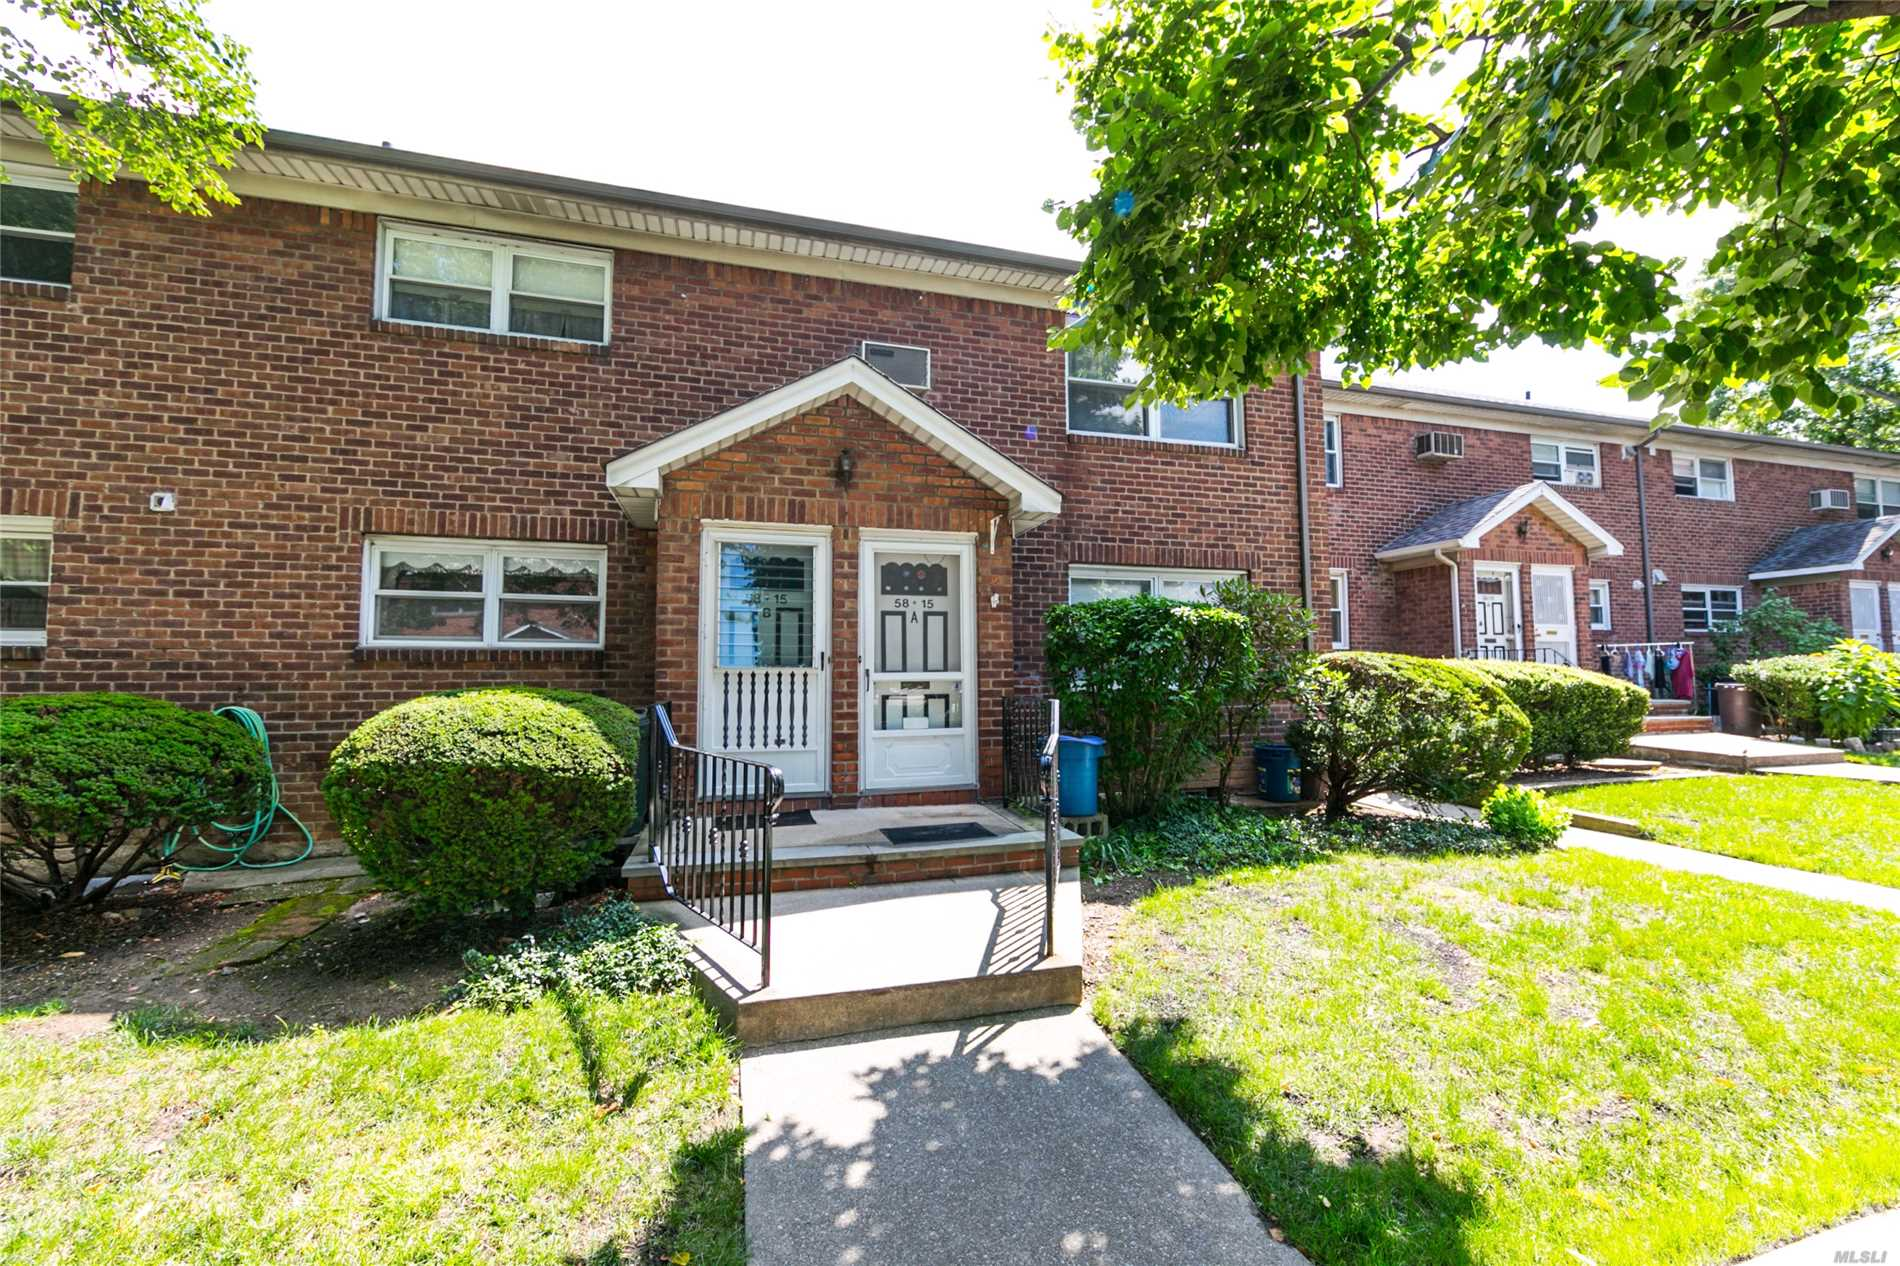 Garden Duplex Condo. Full Finished Basement With Half Bath.Newly Painted Bedroom, Large Eat-In Kitchen With Custom Cabinets, Hardwood Floors. Private Front Patio. Nice Quiet Block. Easy Access To Major Highways And Public Transportation (Q31, Q88, Q17 Buses). School District 26: Ps 173, Jhs 216. Well Maintained Development.